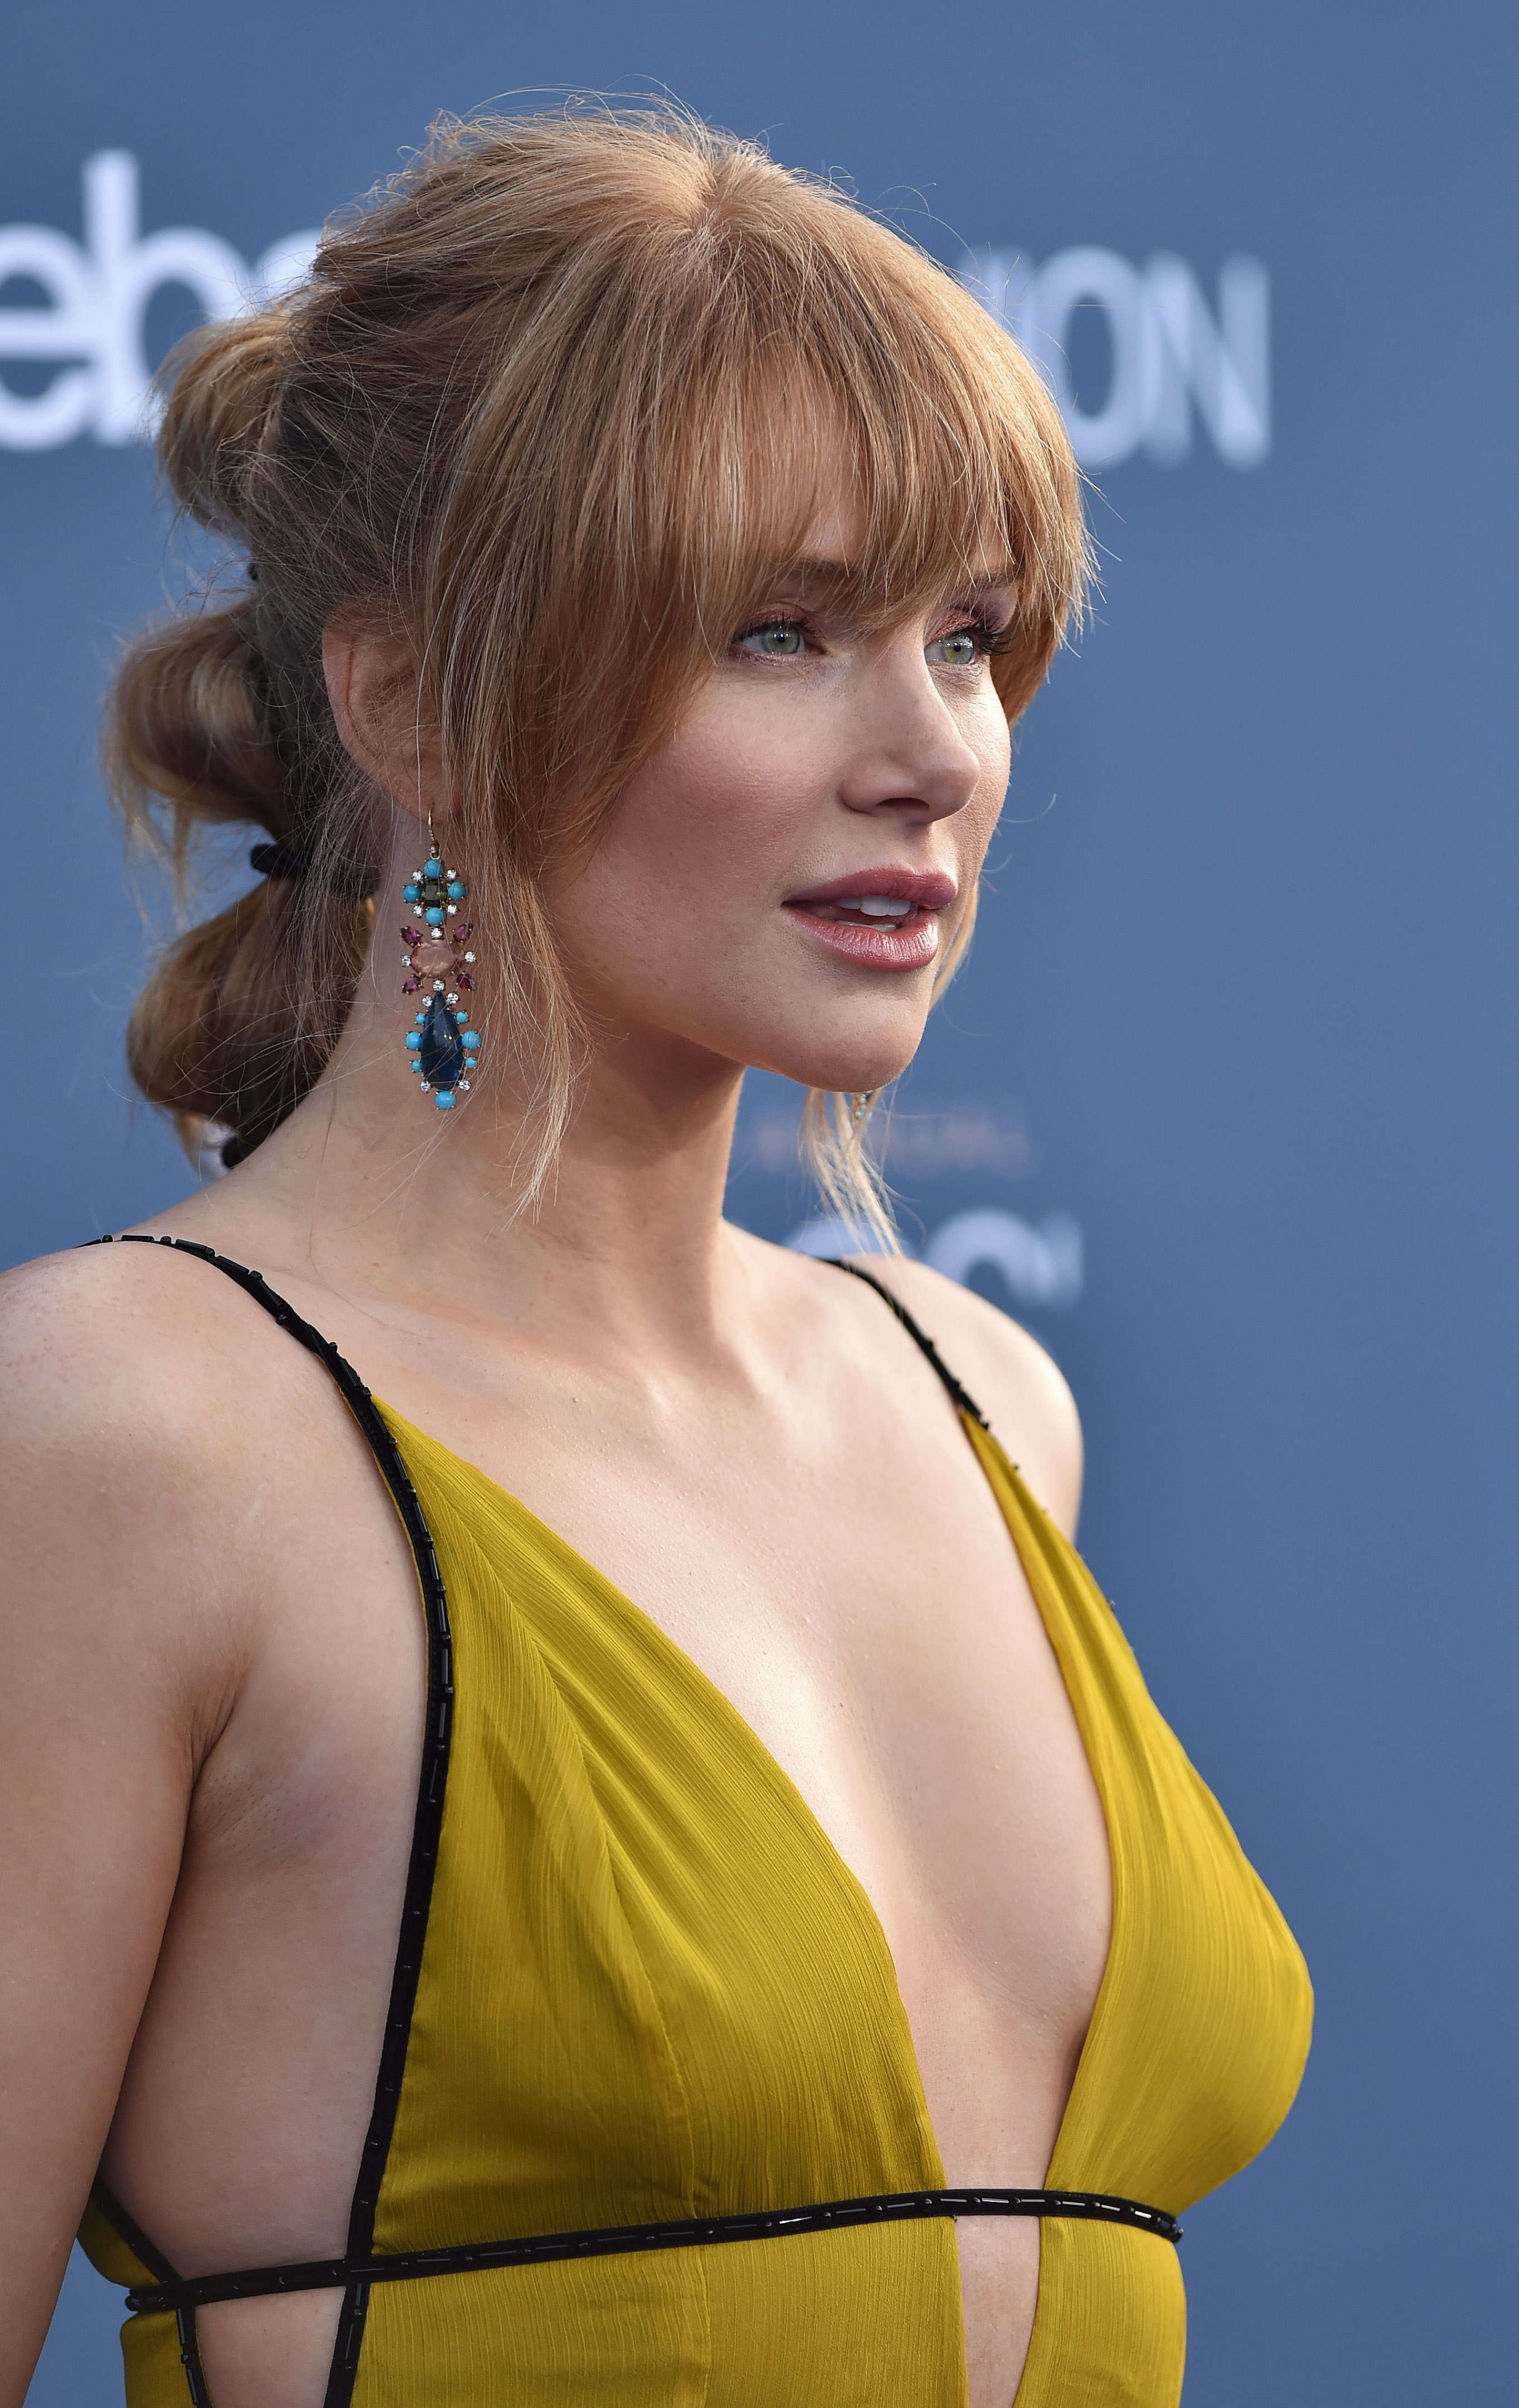 Cleavage Bryce Dallas Howard nude photos 2019